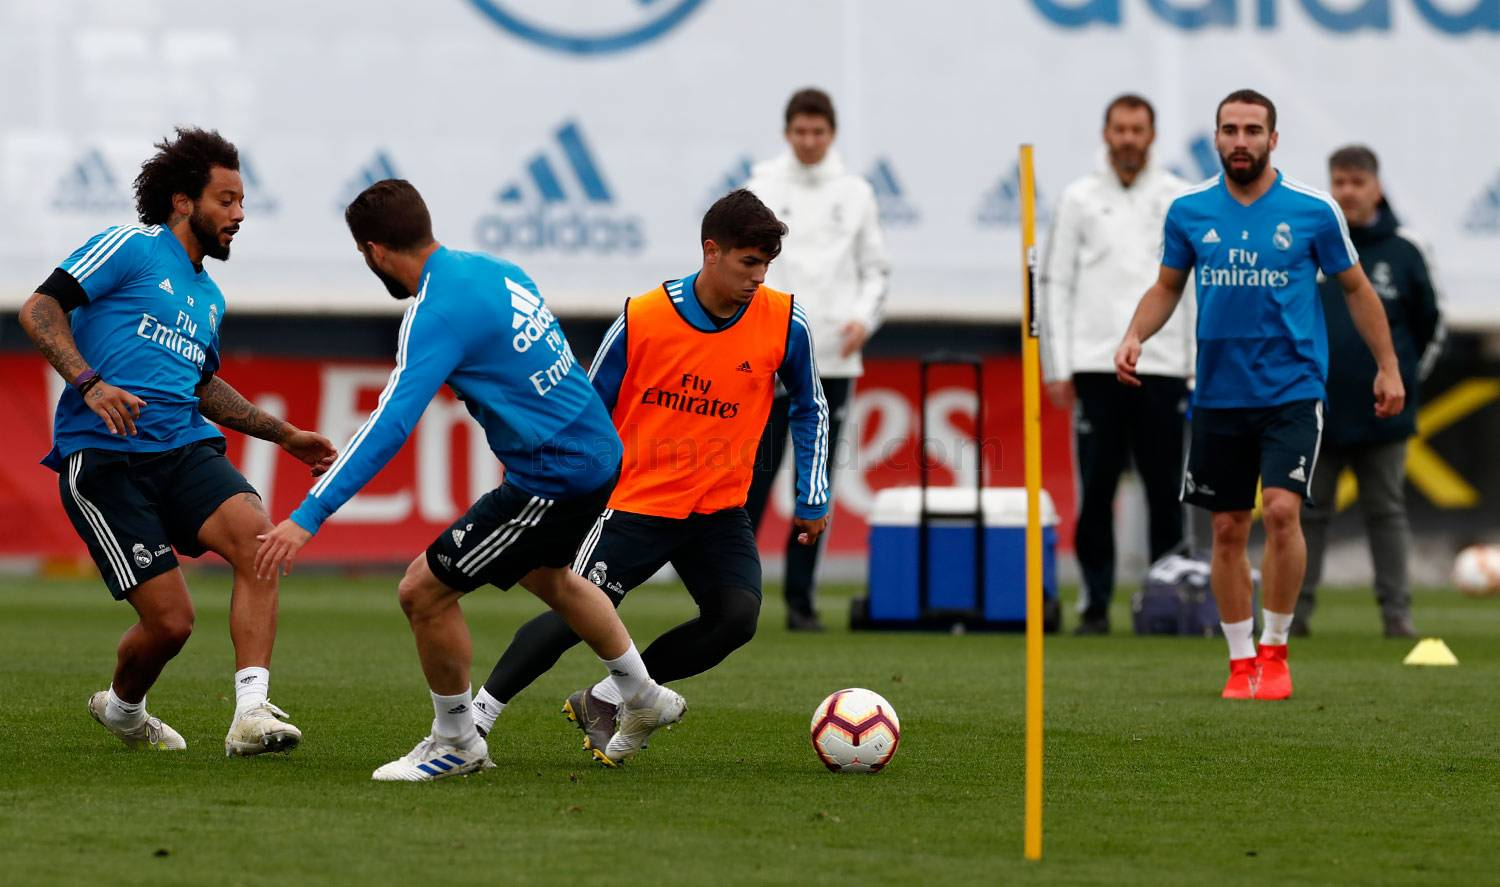 Real Madrid - Entrenamiento del Real Madrid - 19-04-2019